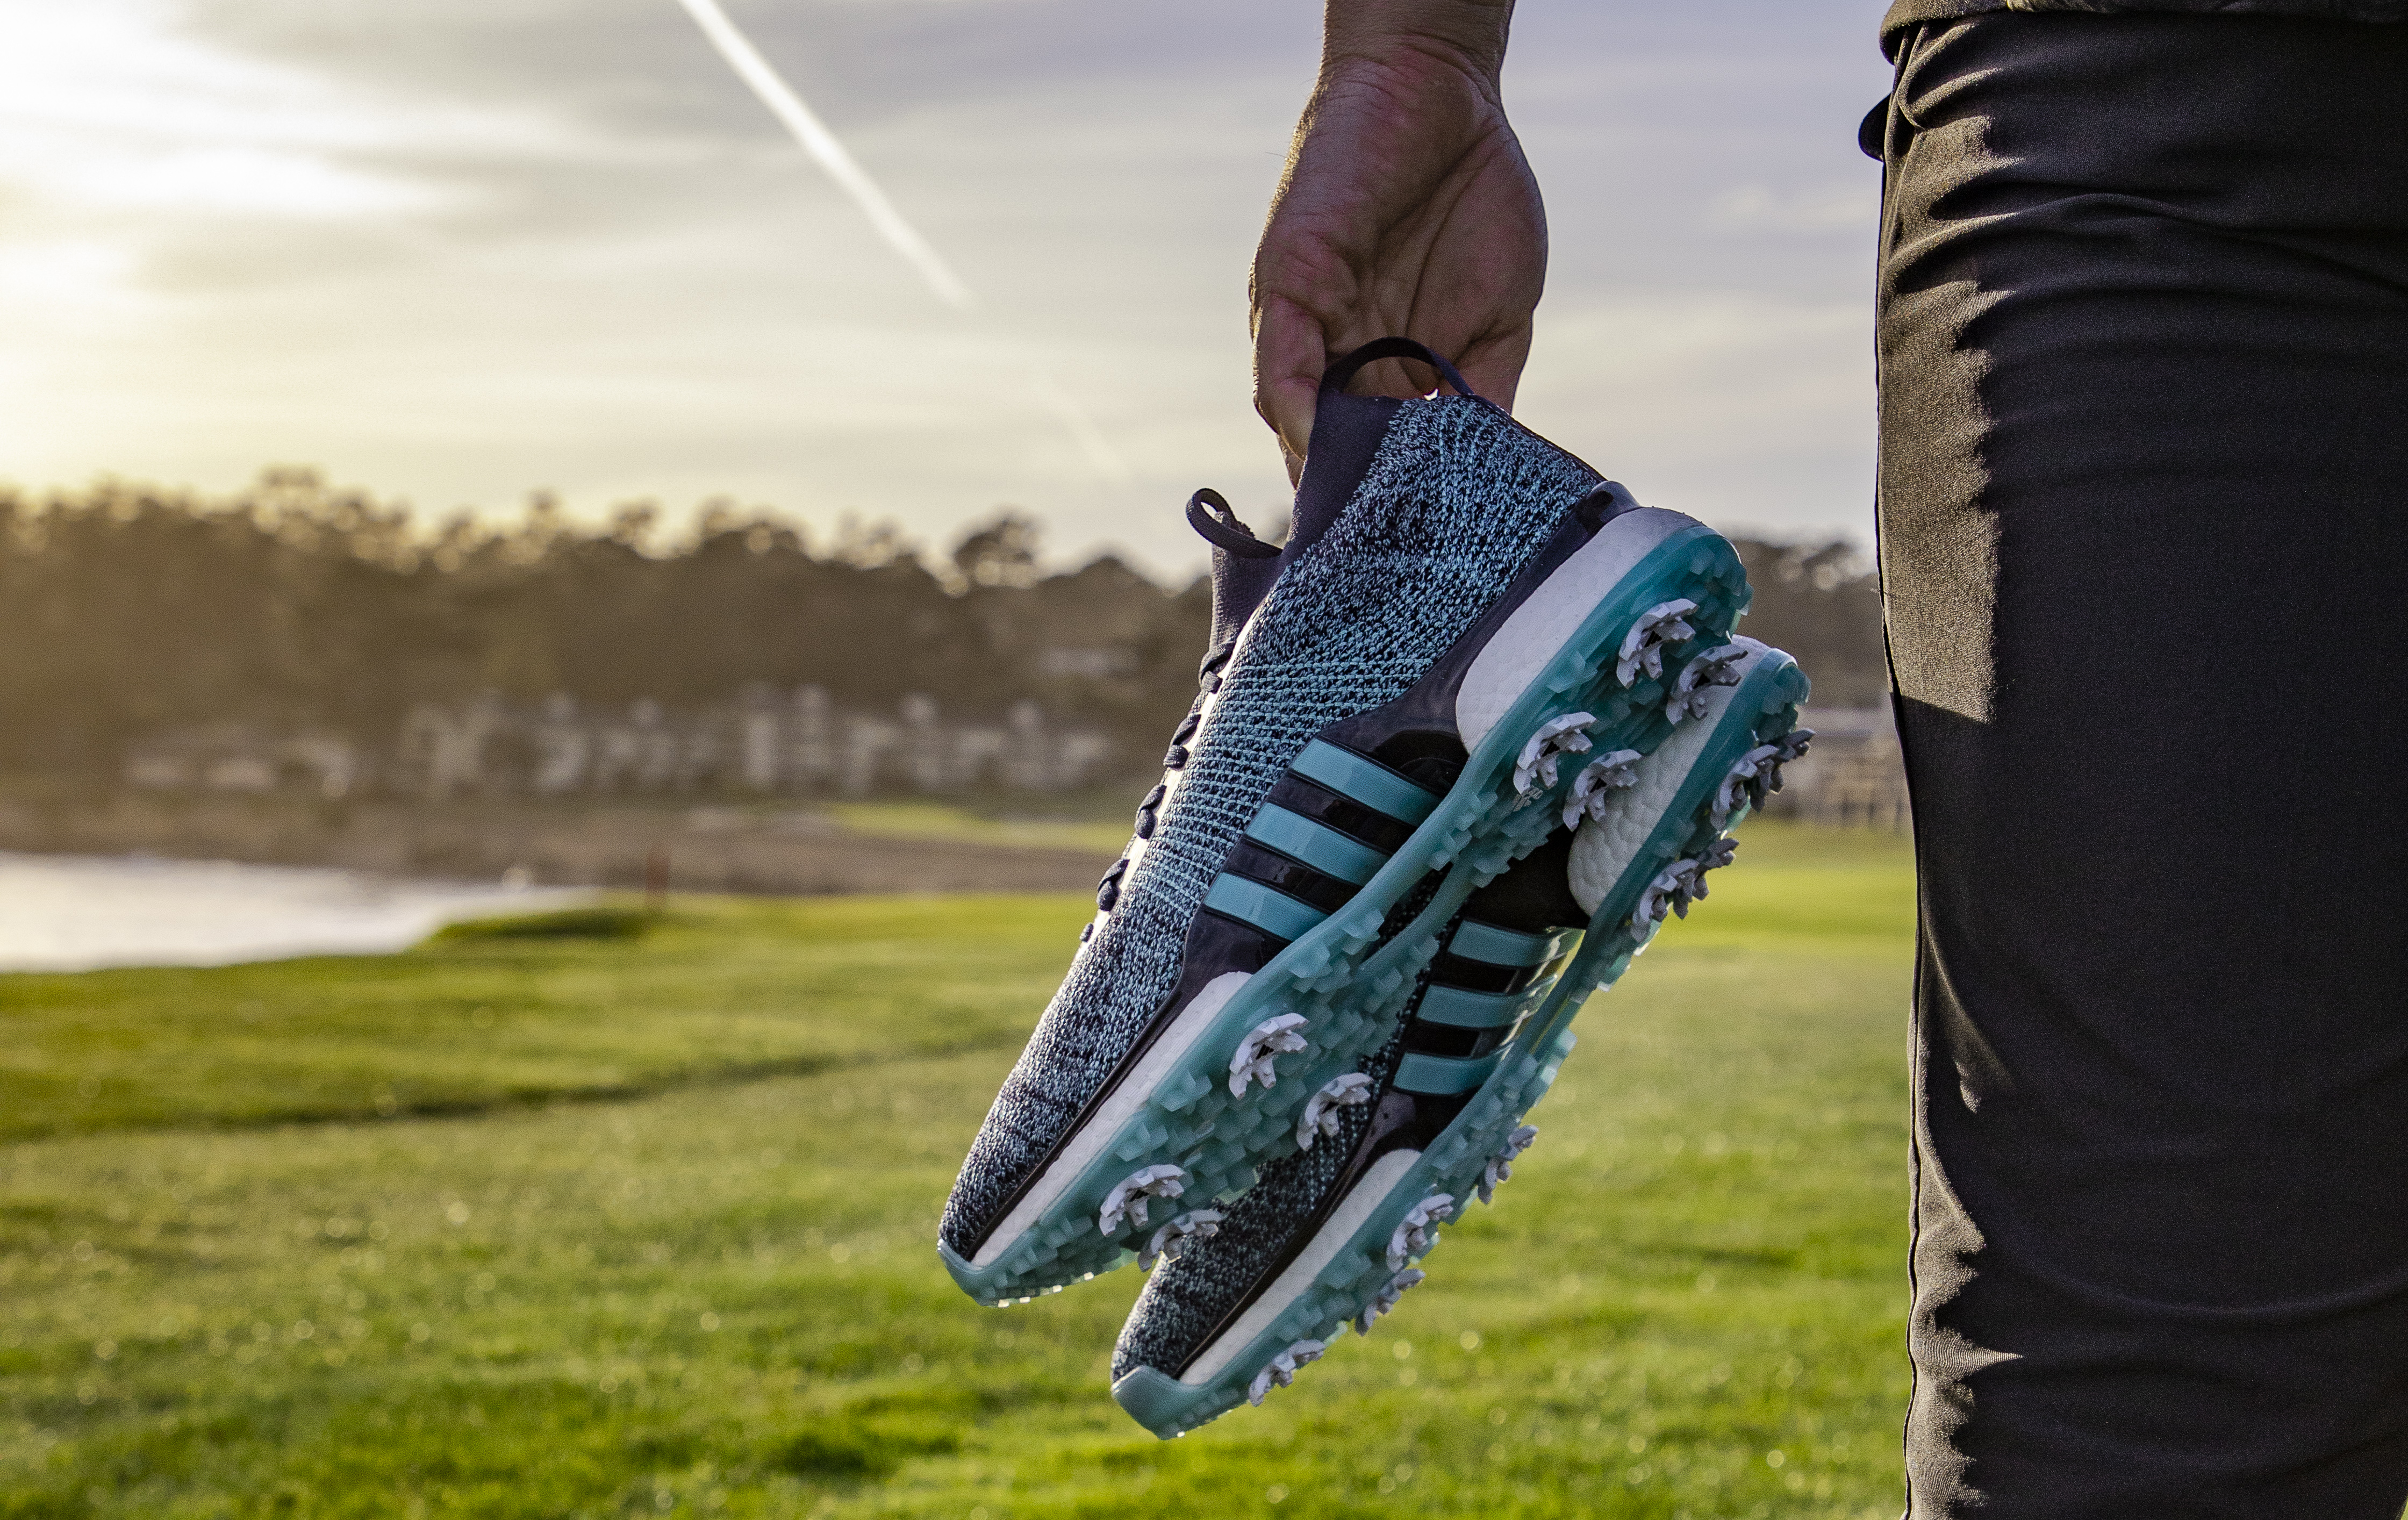 adidas Golf unveils first ever golf shoe made from upcycled